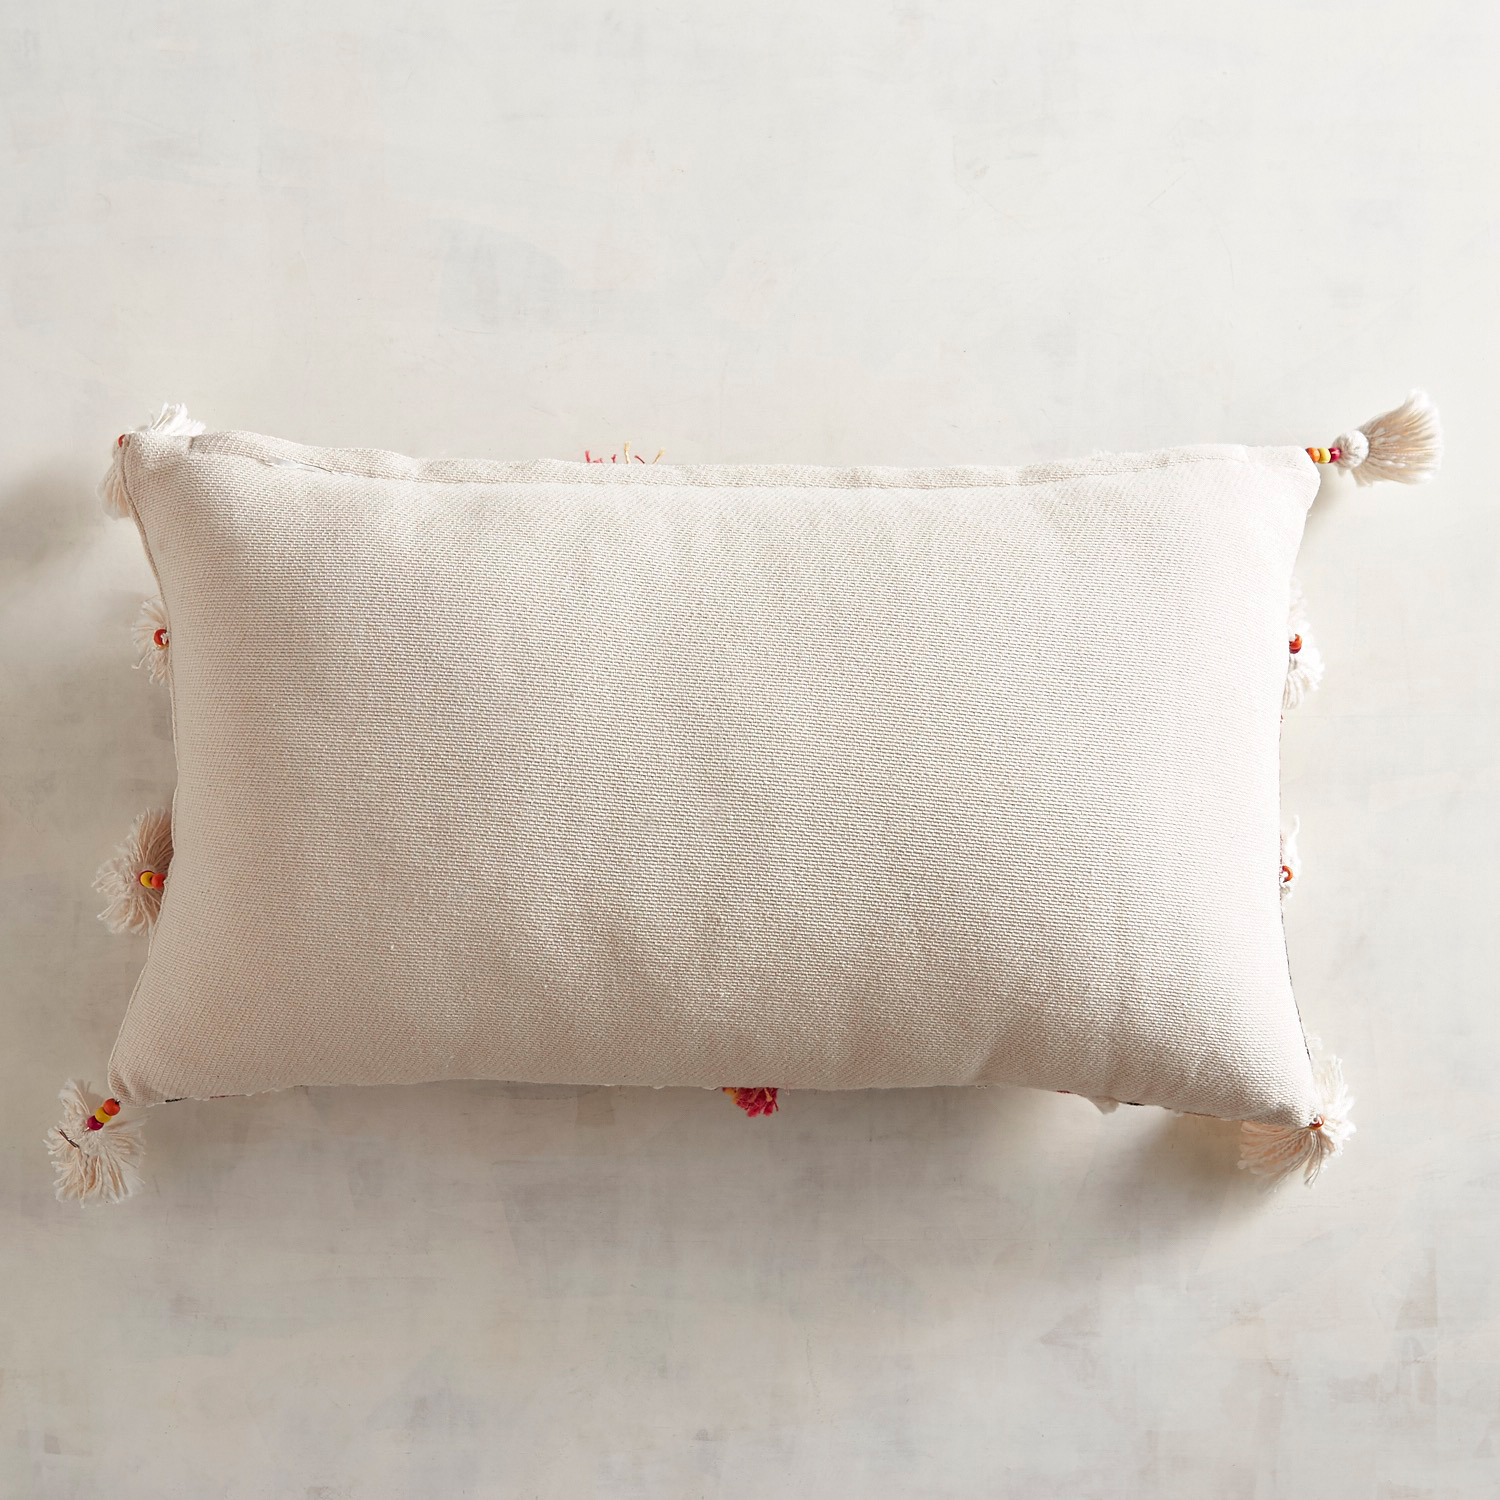 Tufted Textured Striped Pillow